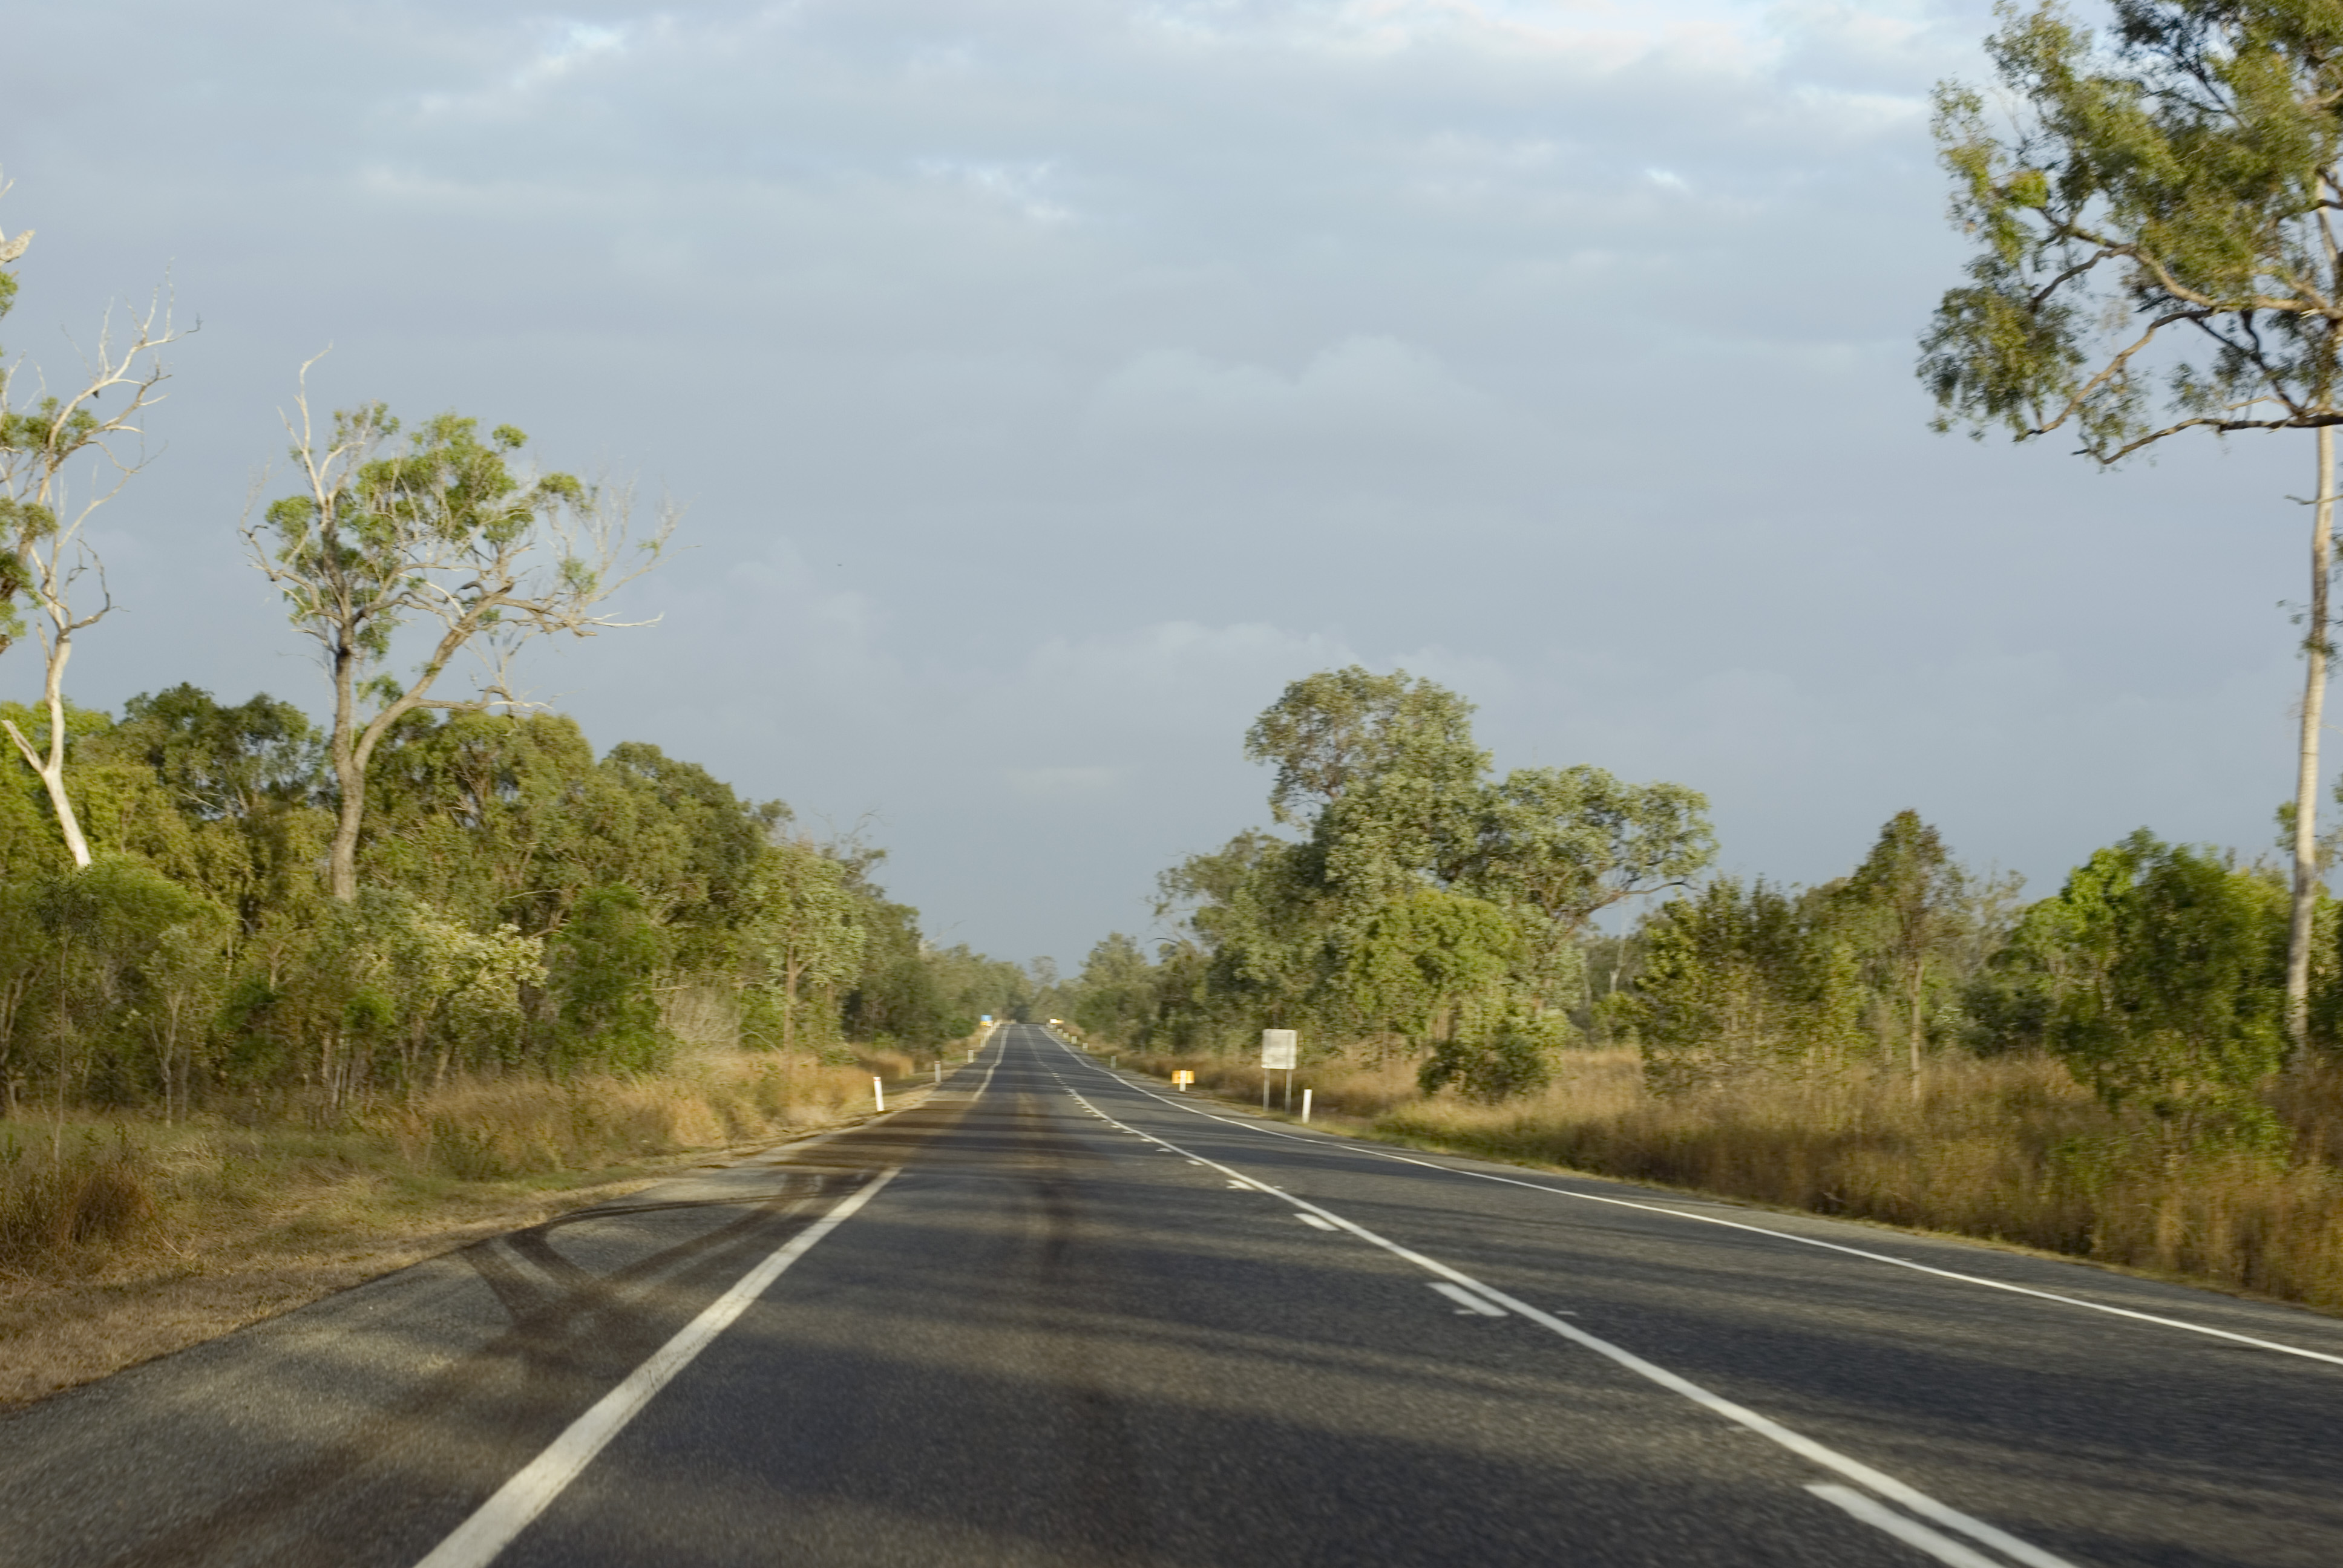 motion blurred view of a long straight highway in queensland, australia.